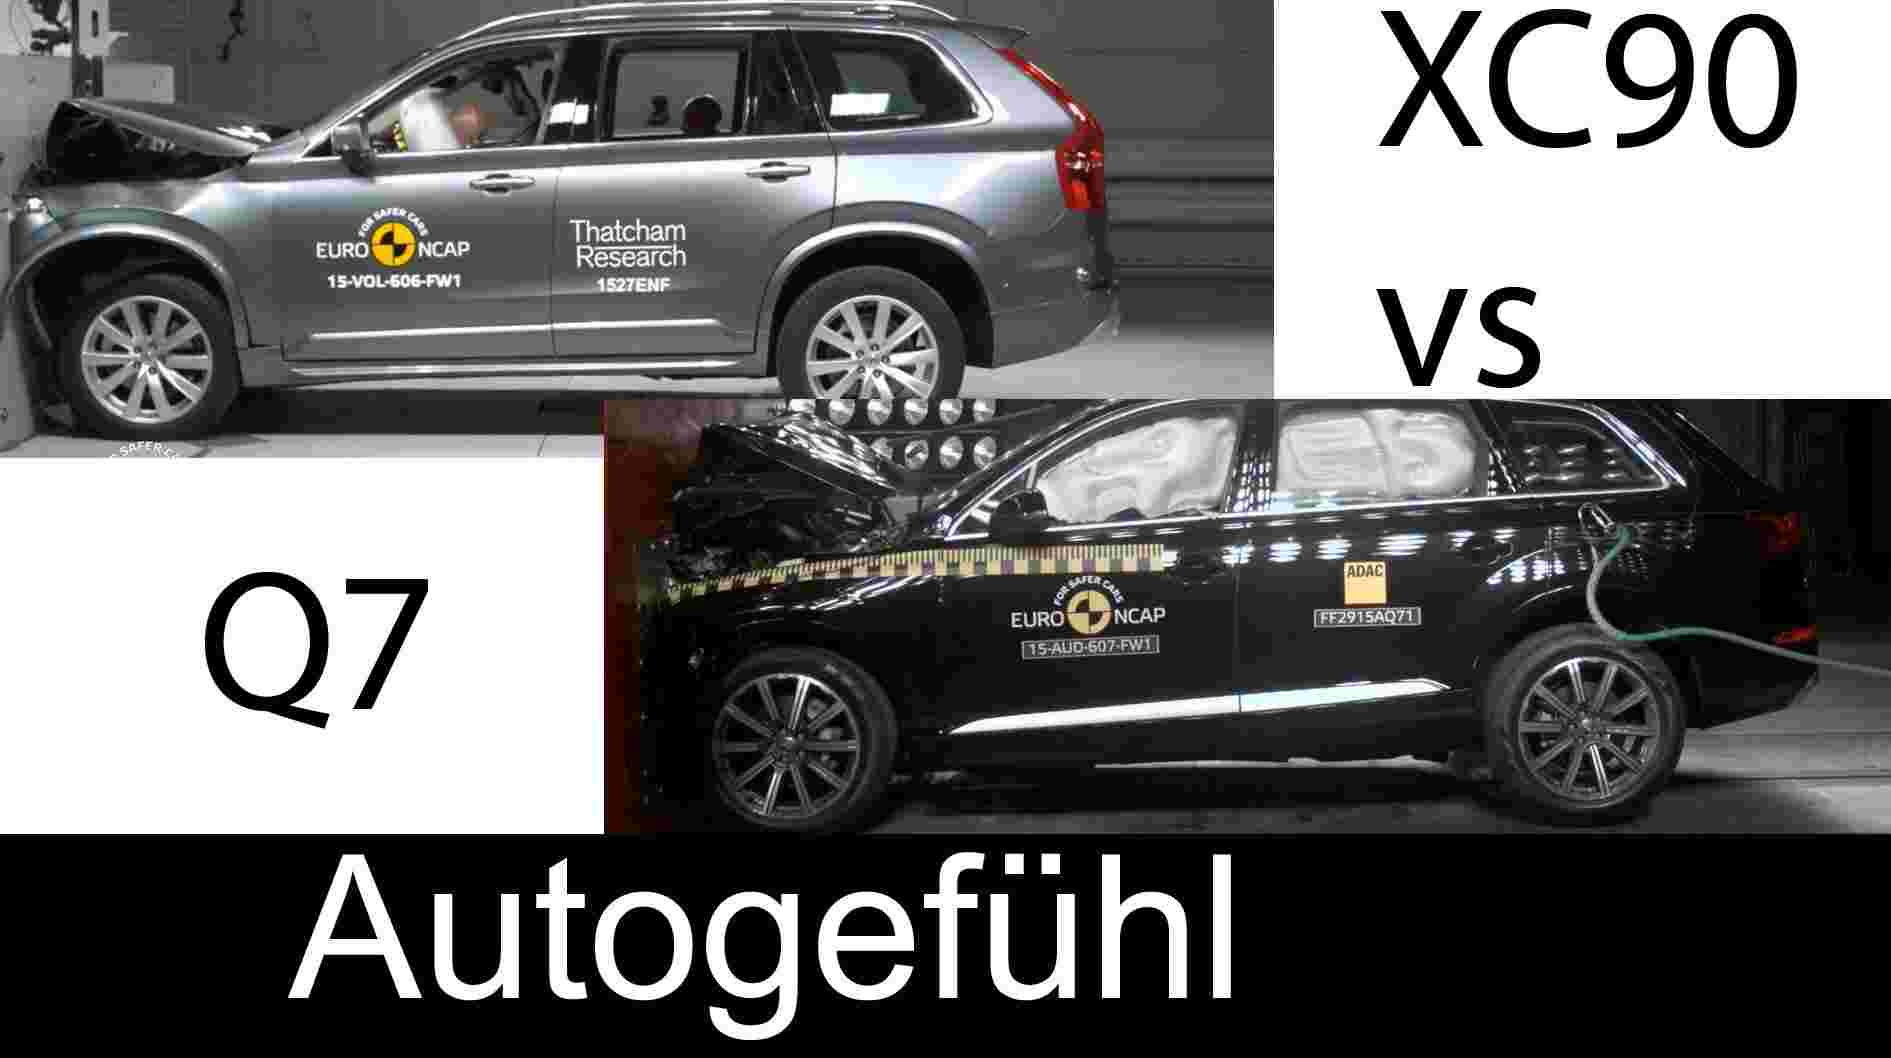 All-new Volvo XC90 vs all-new Audi Q7 crash test comparison Euro NCAP 5stars - Autogefühl